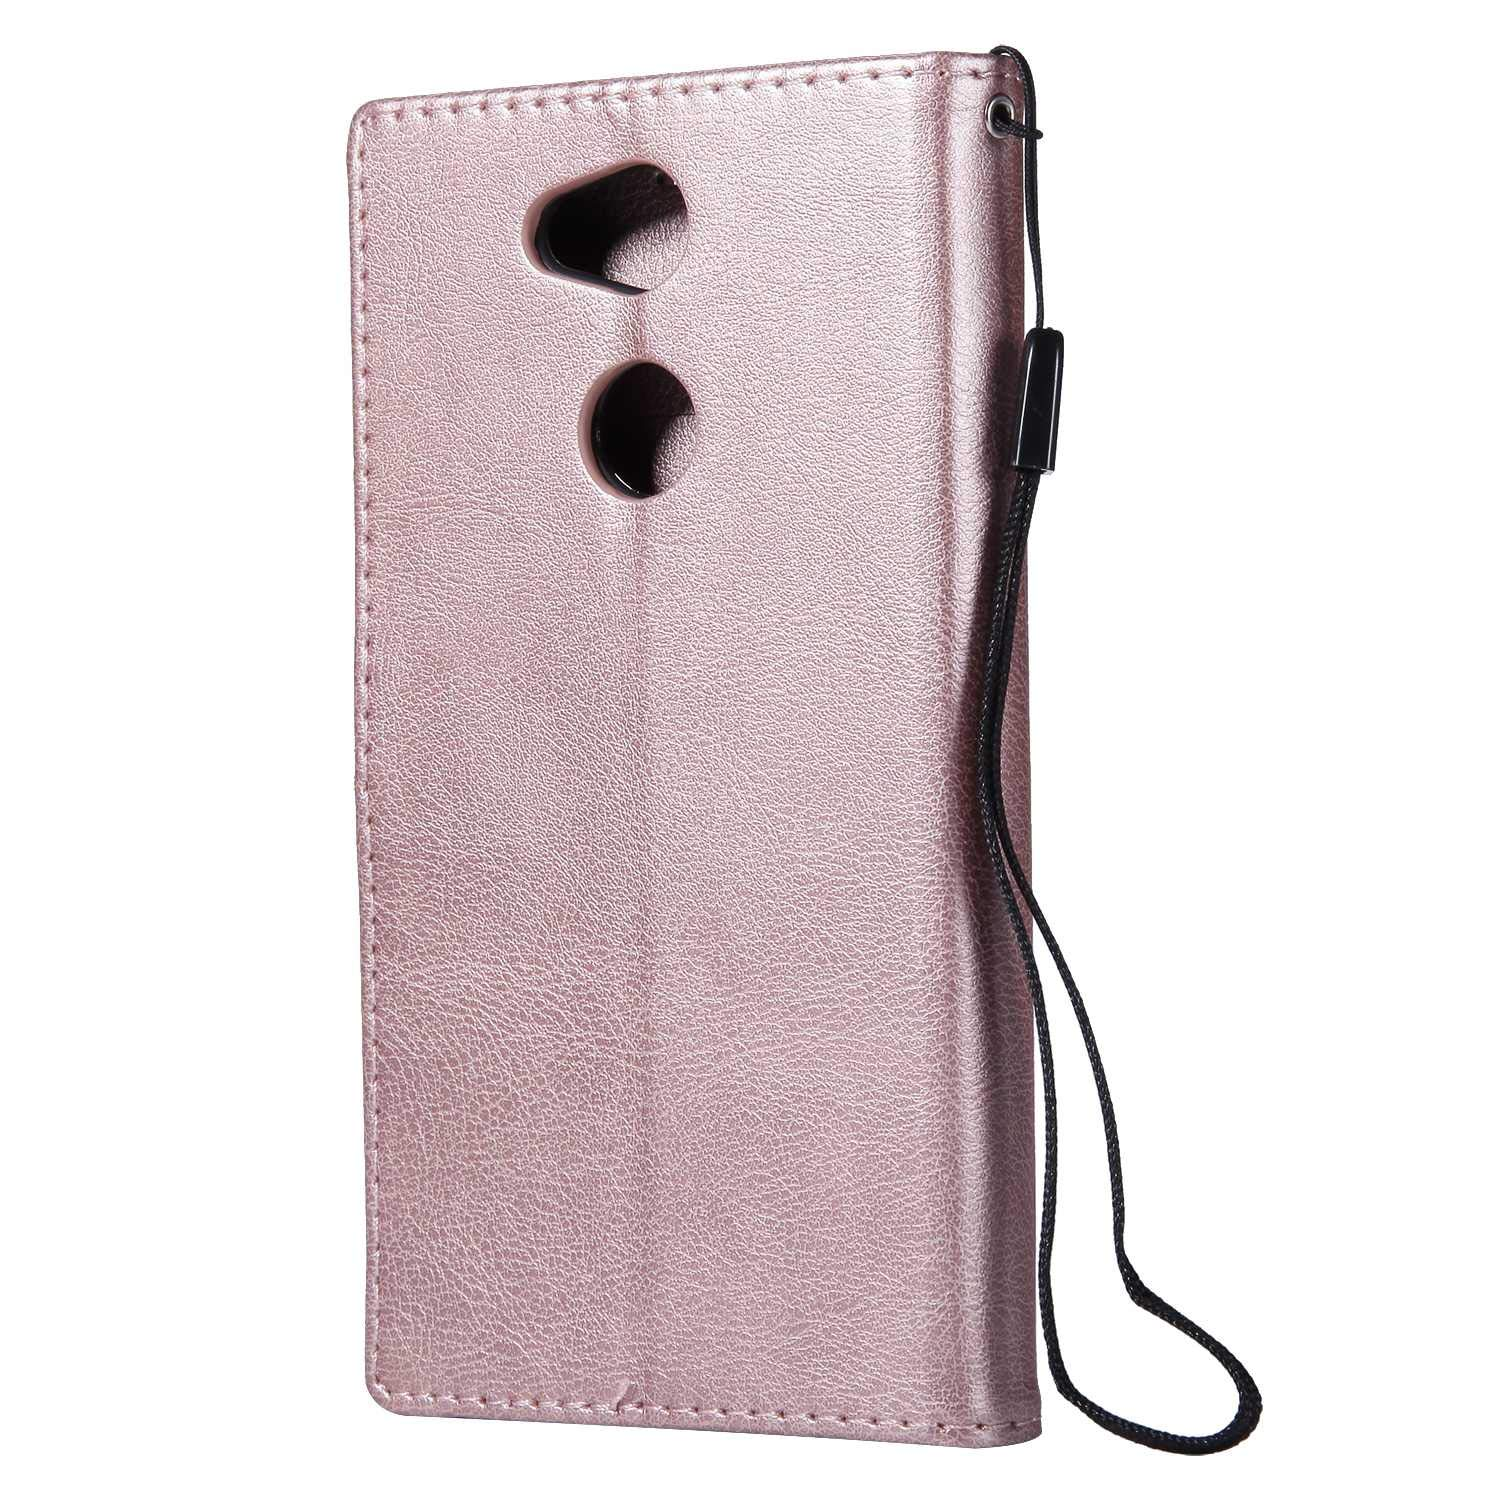 Sony Xperia L2 Wallet Case, CUSKING Premium Leather Cover with Silicone Inner Case for Sony Xperia L2 [Card Holder] [Magnetic Closure] [Hand Strap] - Rose Gold by CUSKING (Image #2)